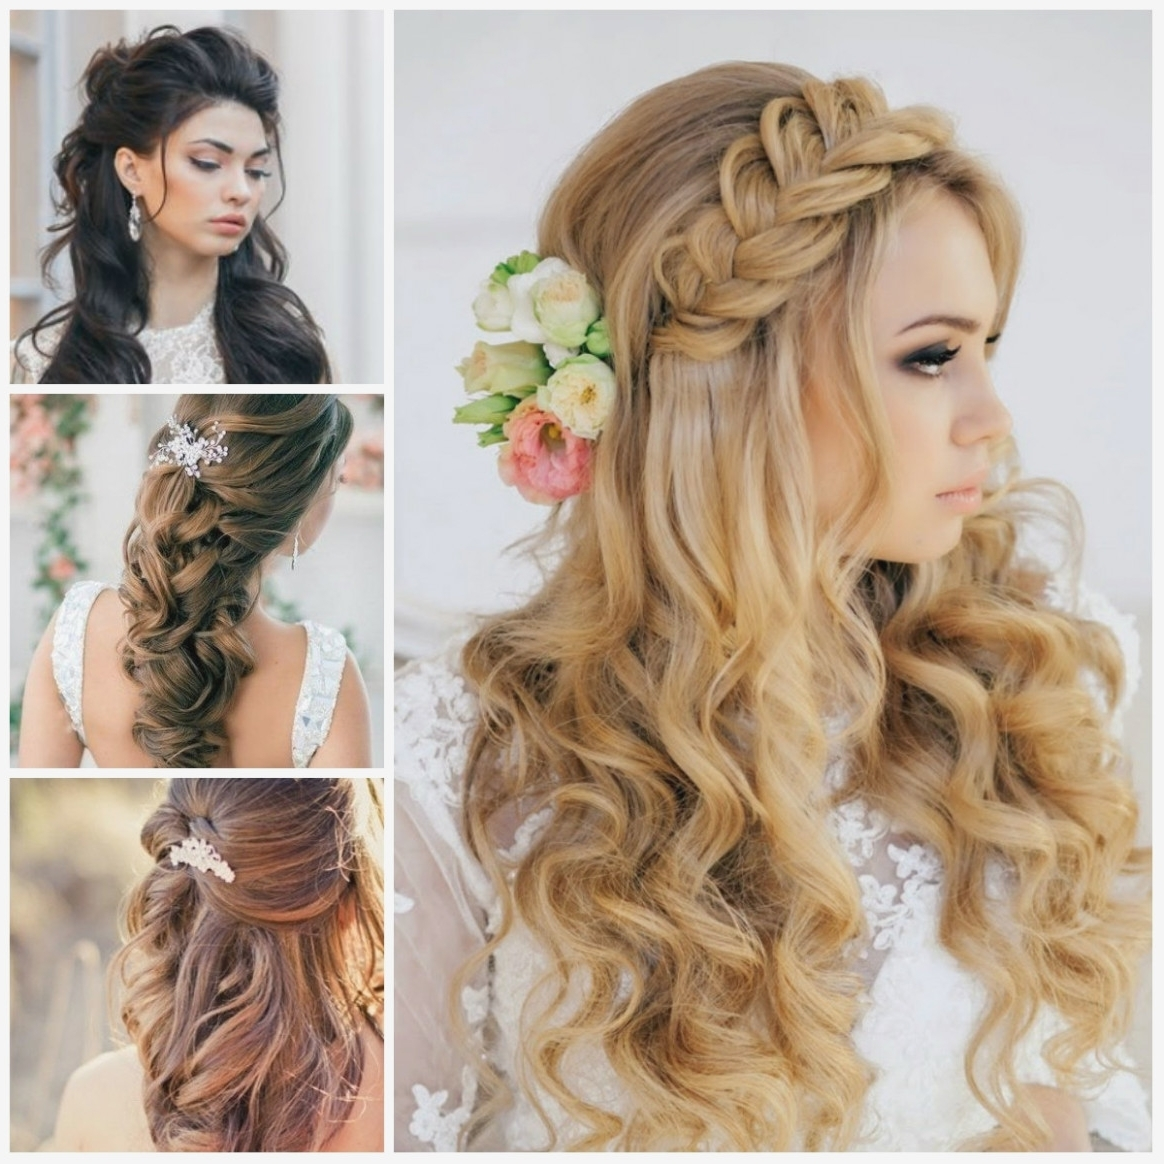 Fashionable Wedding Hairstyles For Medium Length Hair With Side Ponytail Throughout Tag: Wedding Hairstyles For Medium Length Hair Side Ponytail (View 5 of 15)